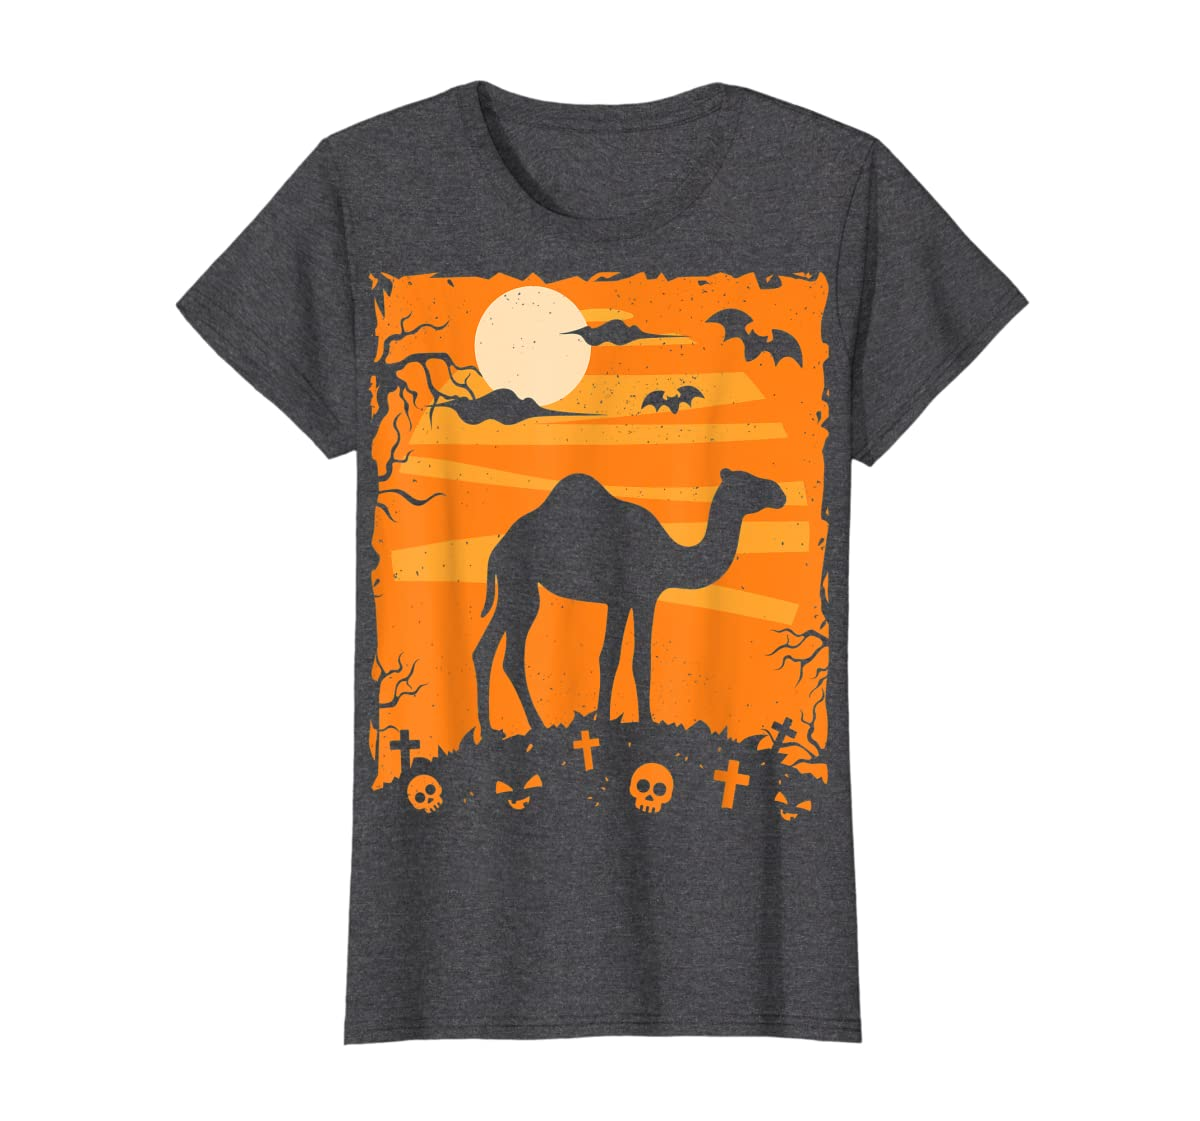 Camel Halloween Costume Animal Funny Pumpkin Outfit Gift T-Shirt-Women's T-Shirt-Dark Heather